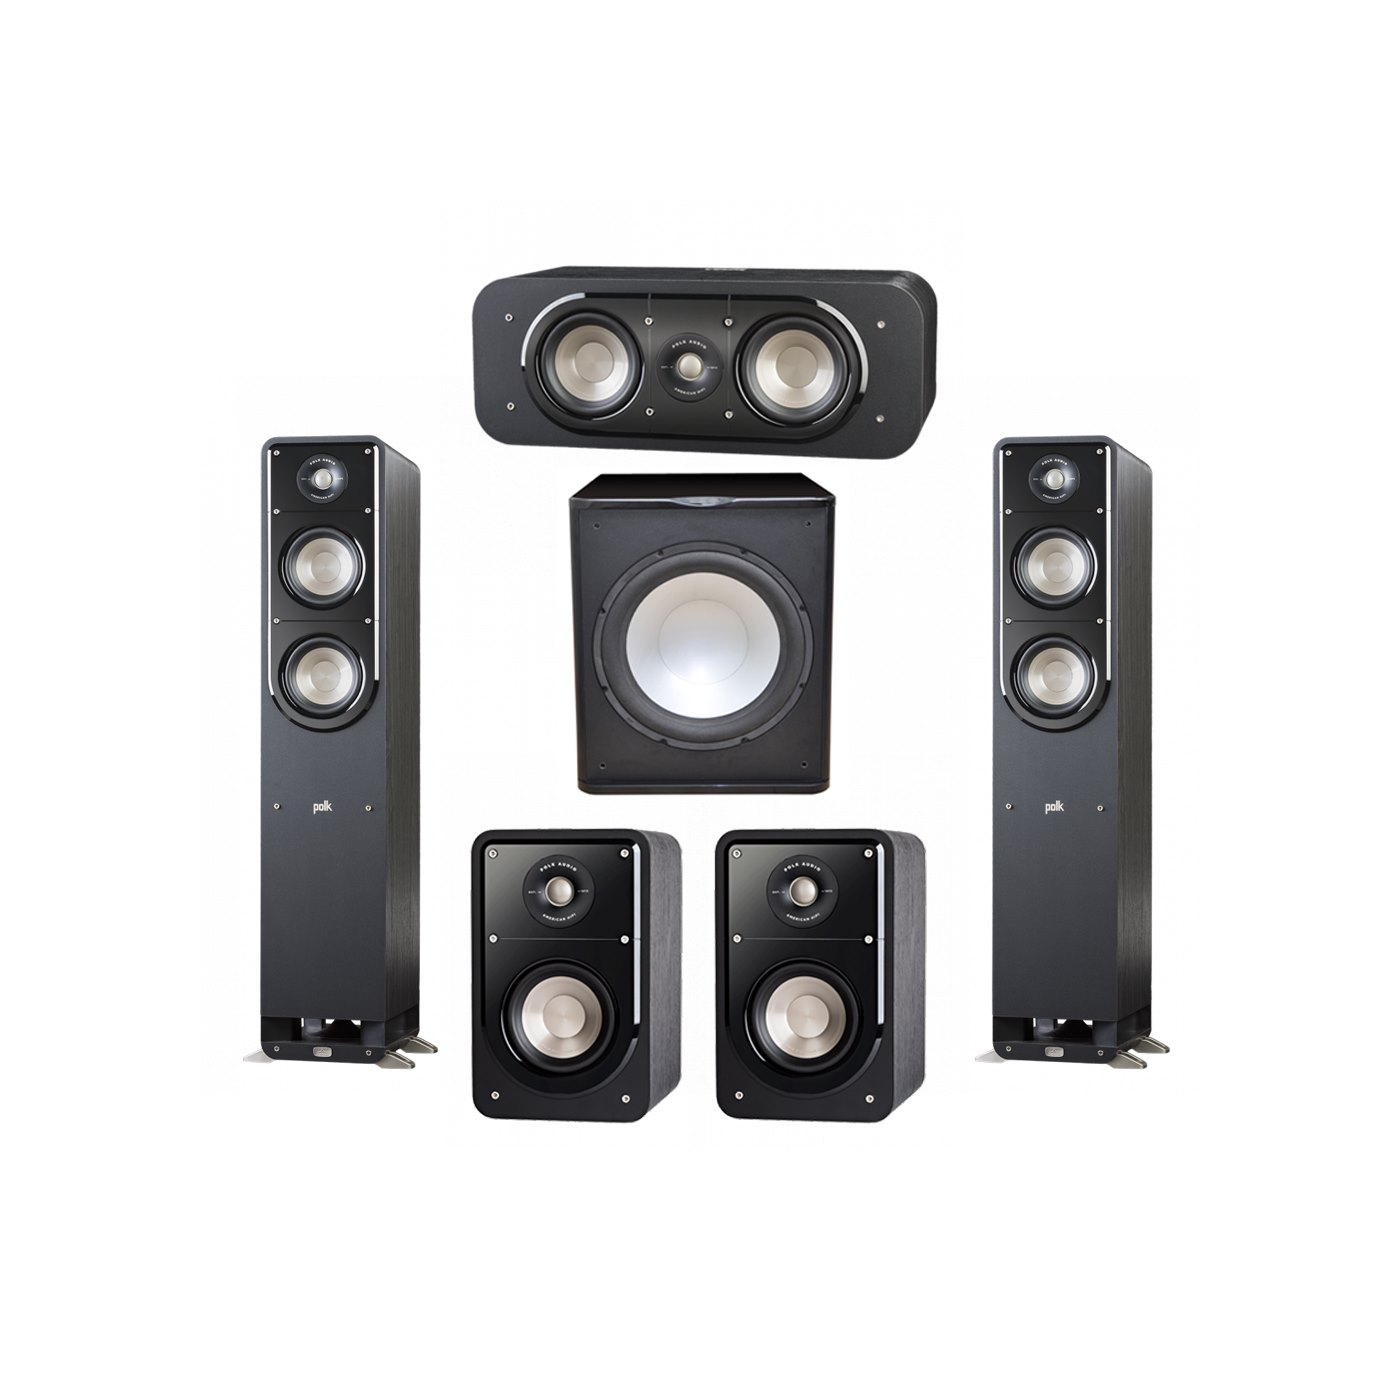 Polk Audio Signature 5.1 System with 2 S50 Tower Speaker, 1 Polk S30 Center Speaker, 2 Polk S15 Bookshelf Speaker, 1 Premier Acoustic PA-150 Powered Subwoofer